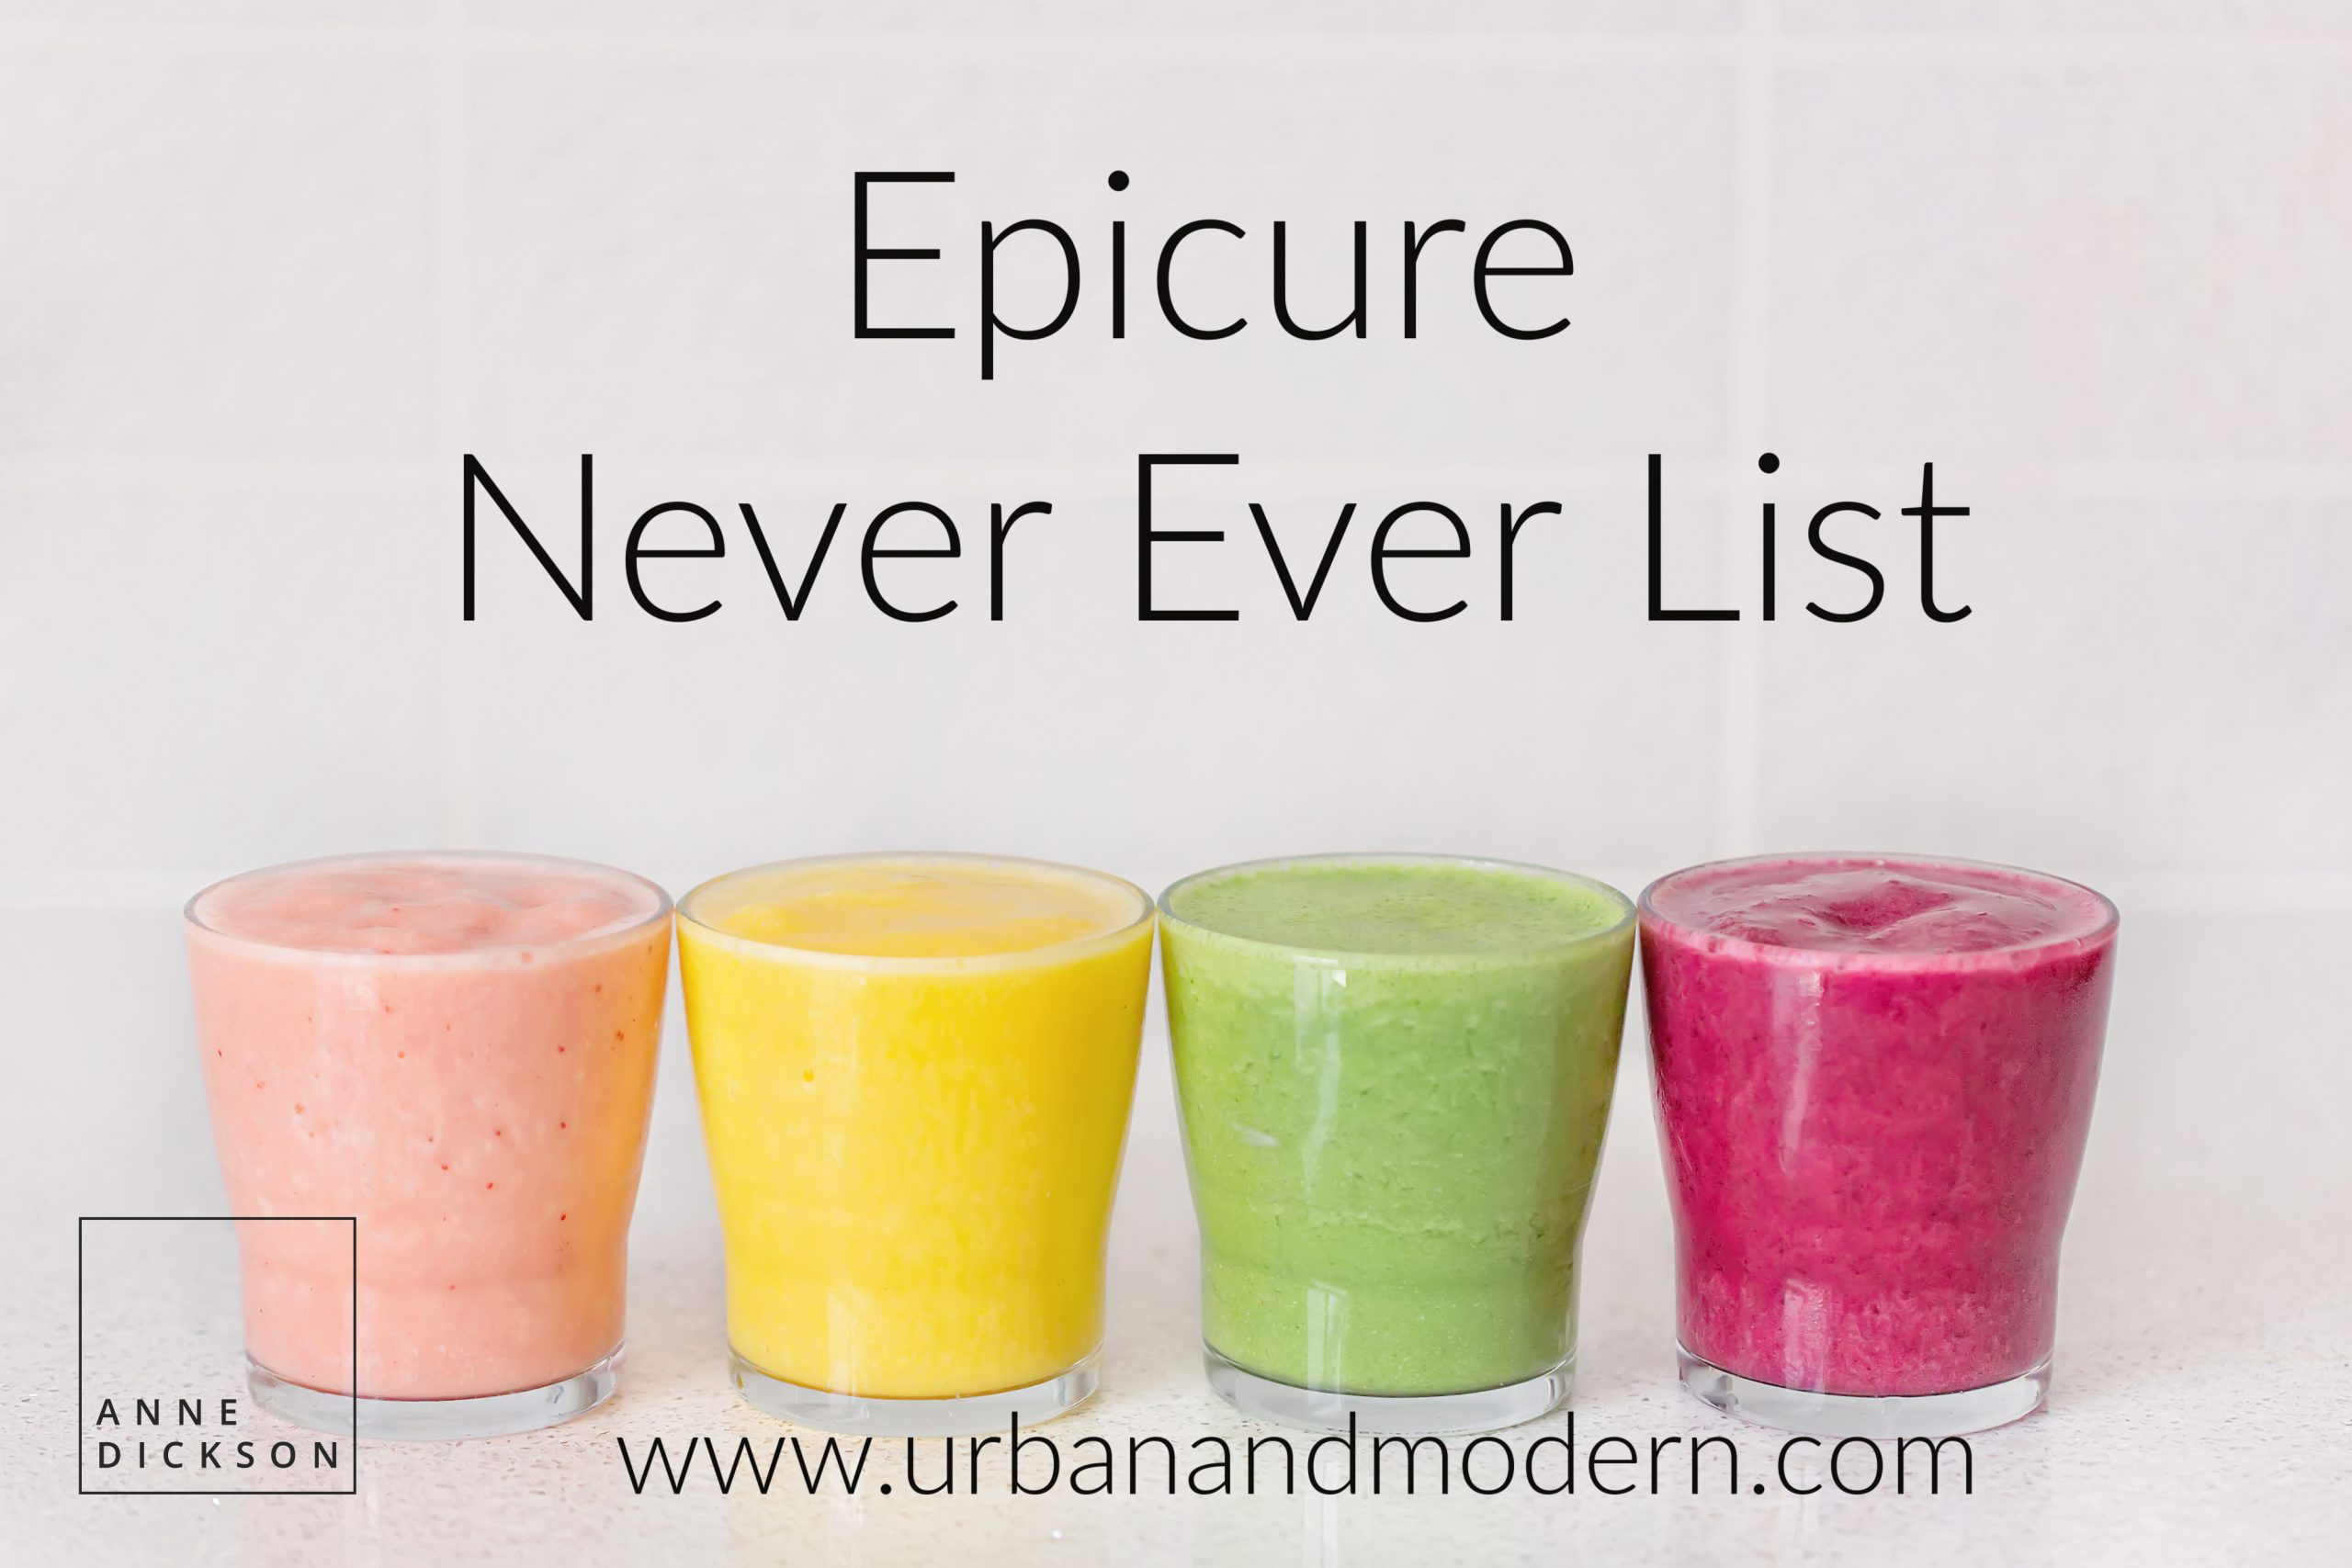 The Epicure Never Ever List